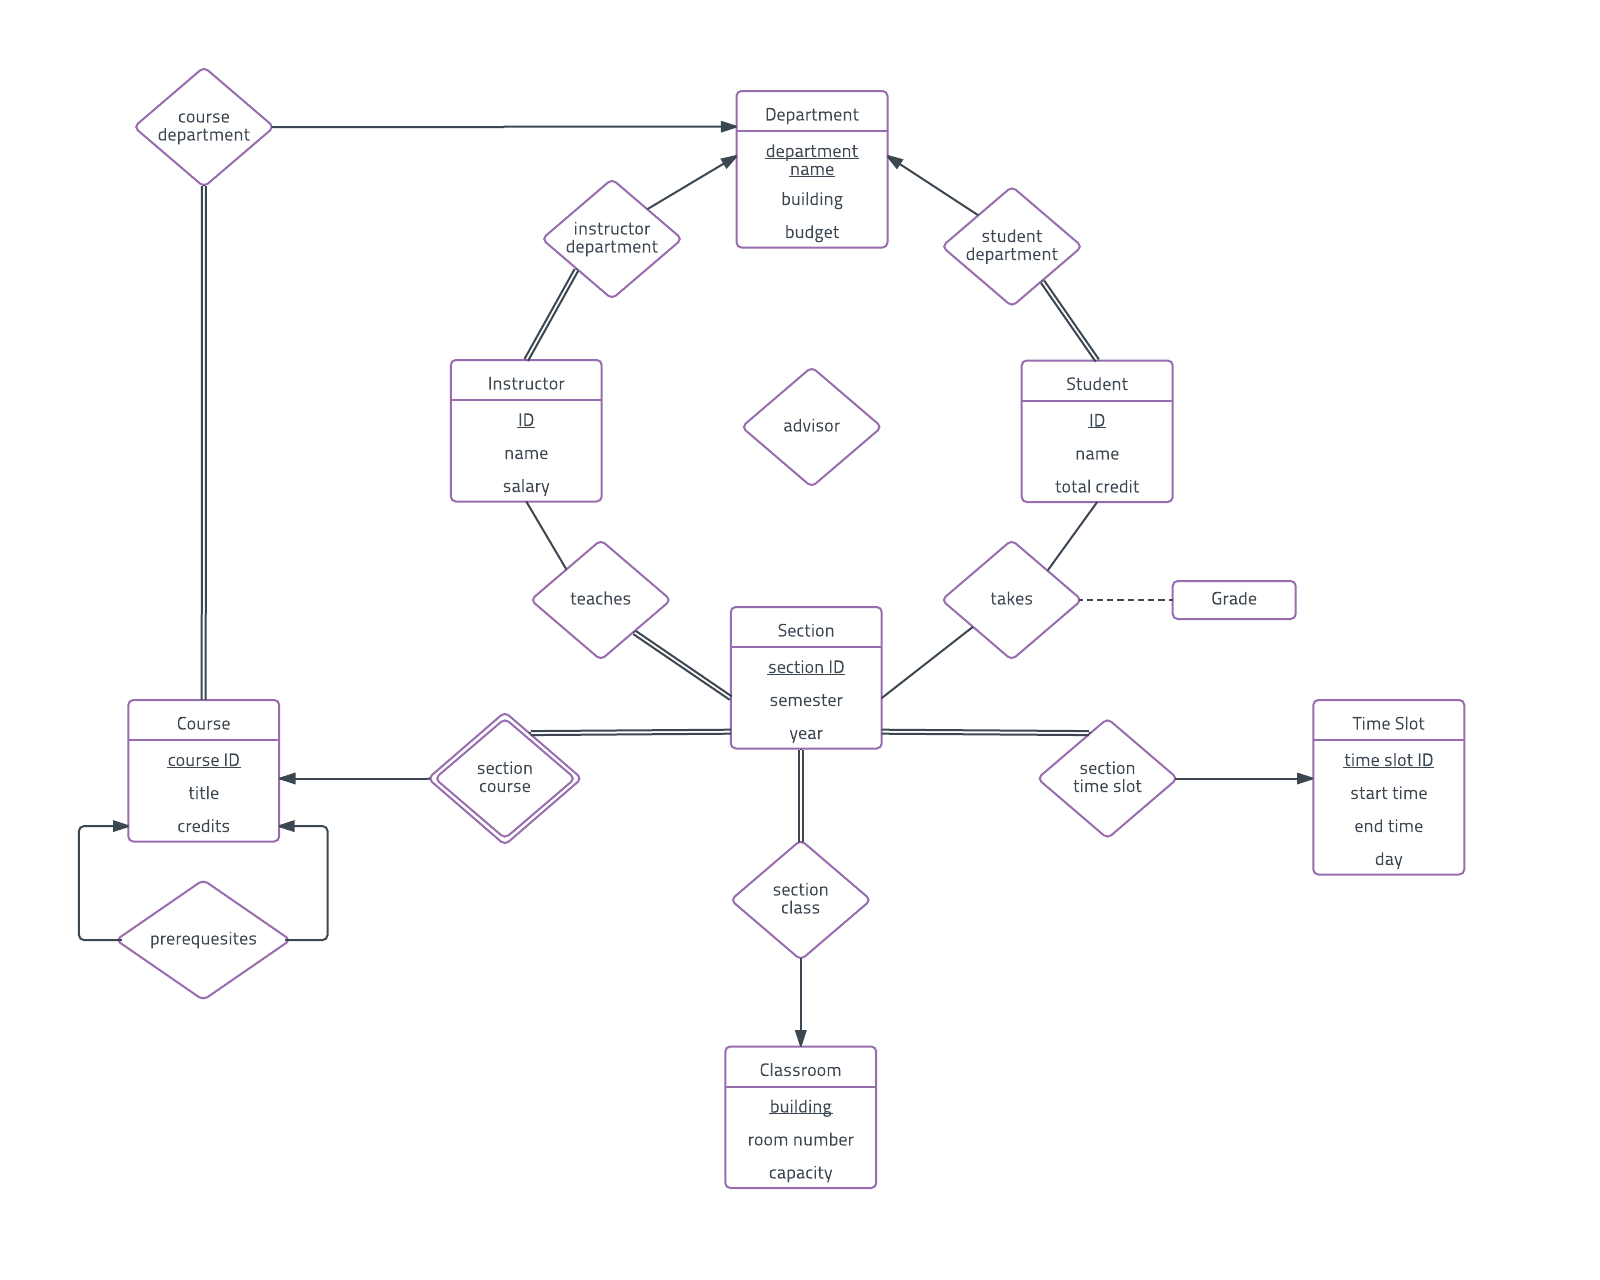 Er Diagram Examples And Templates | Lucidchart with About Er Diagram